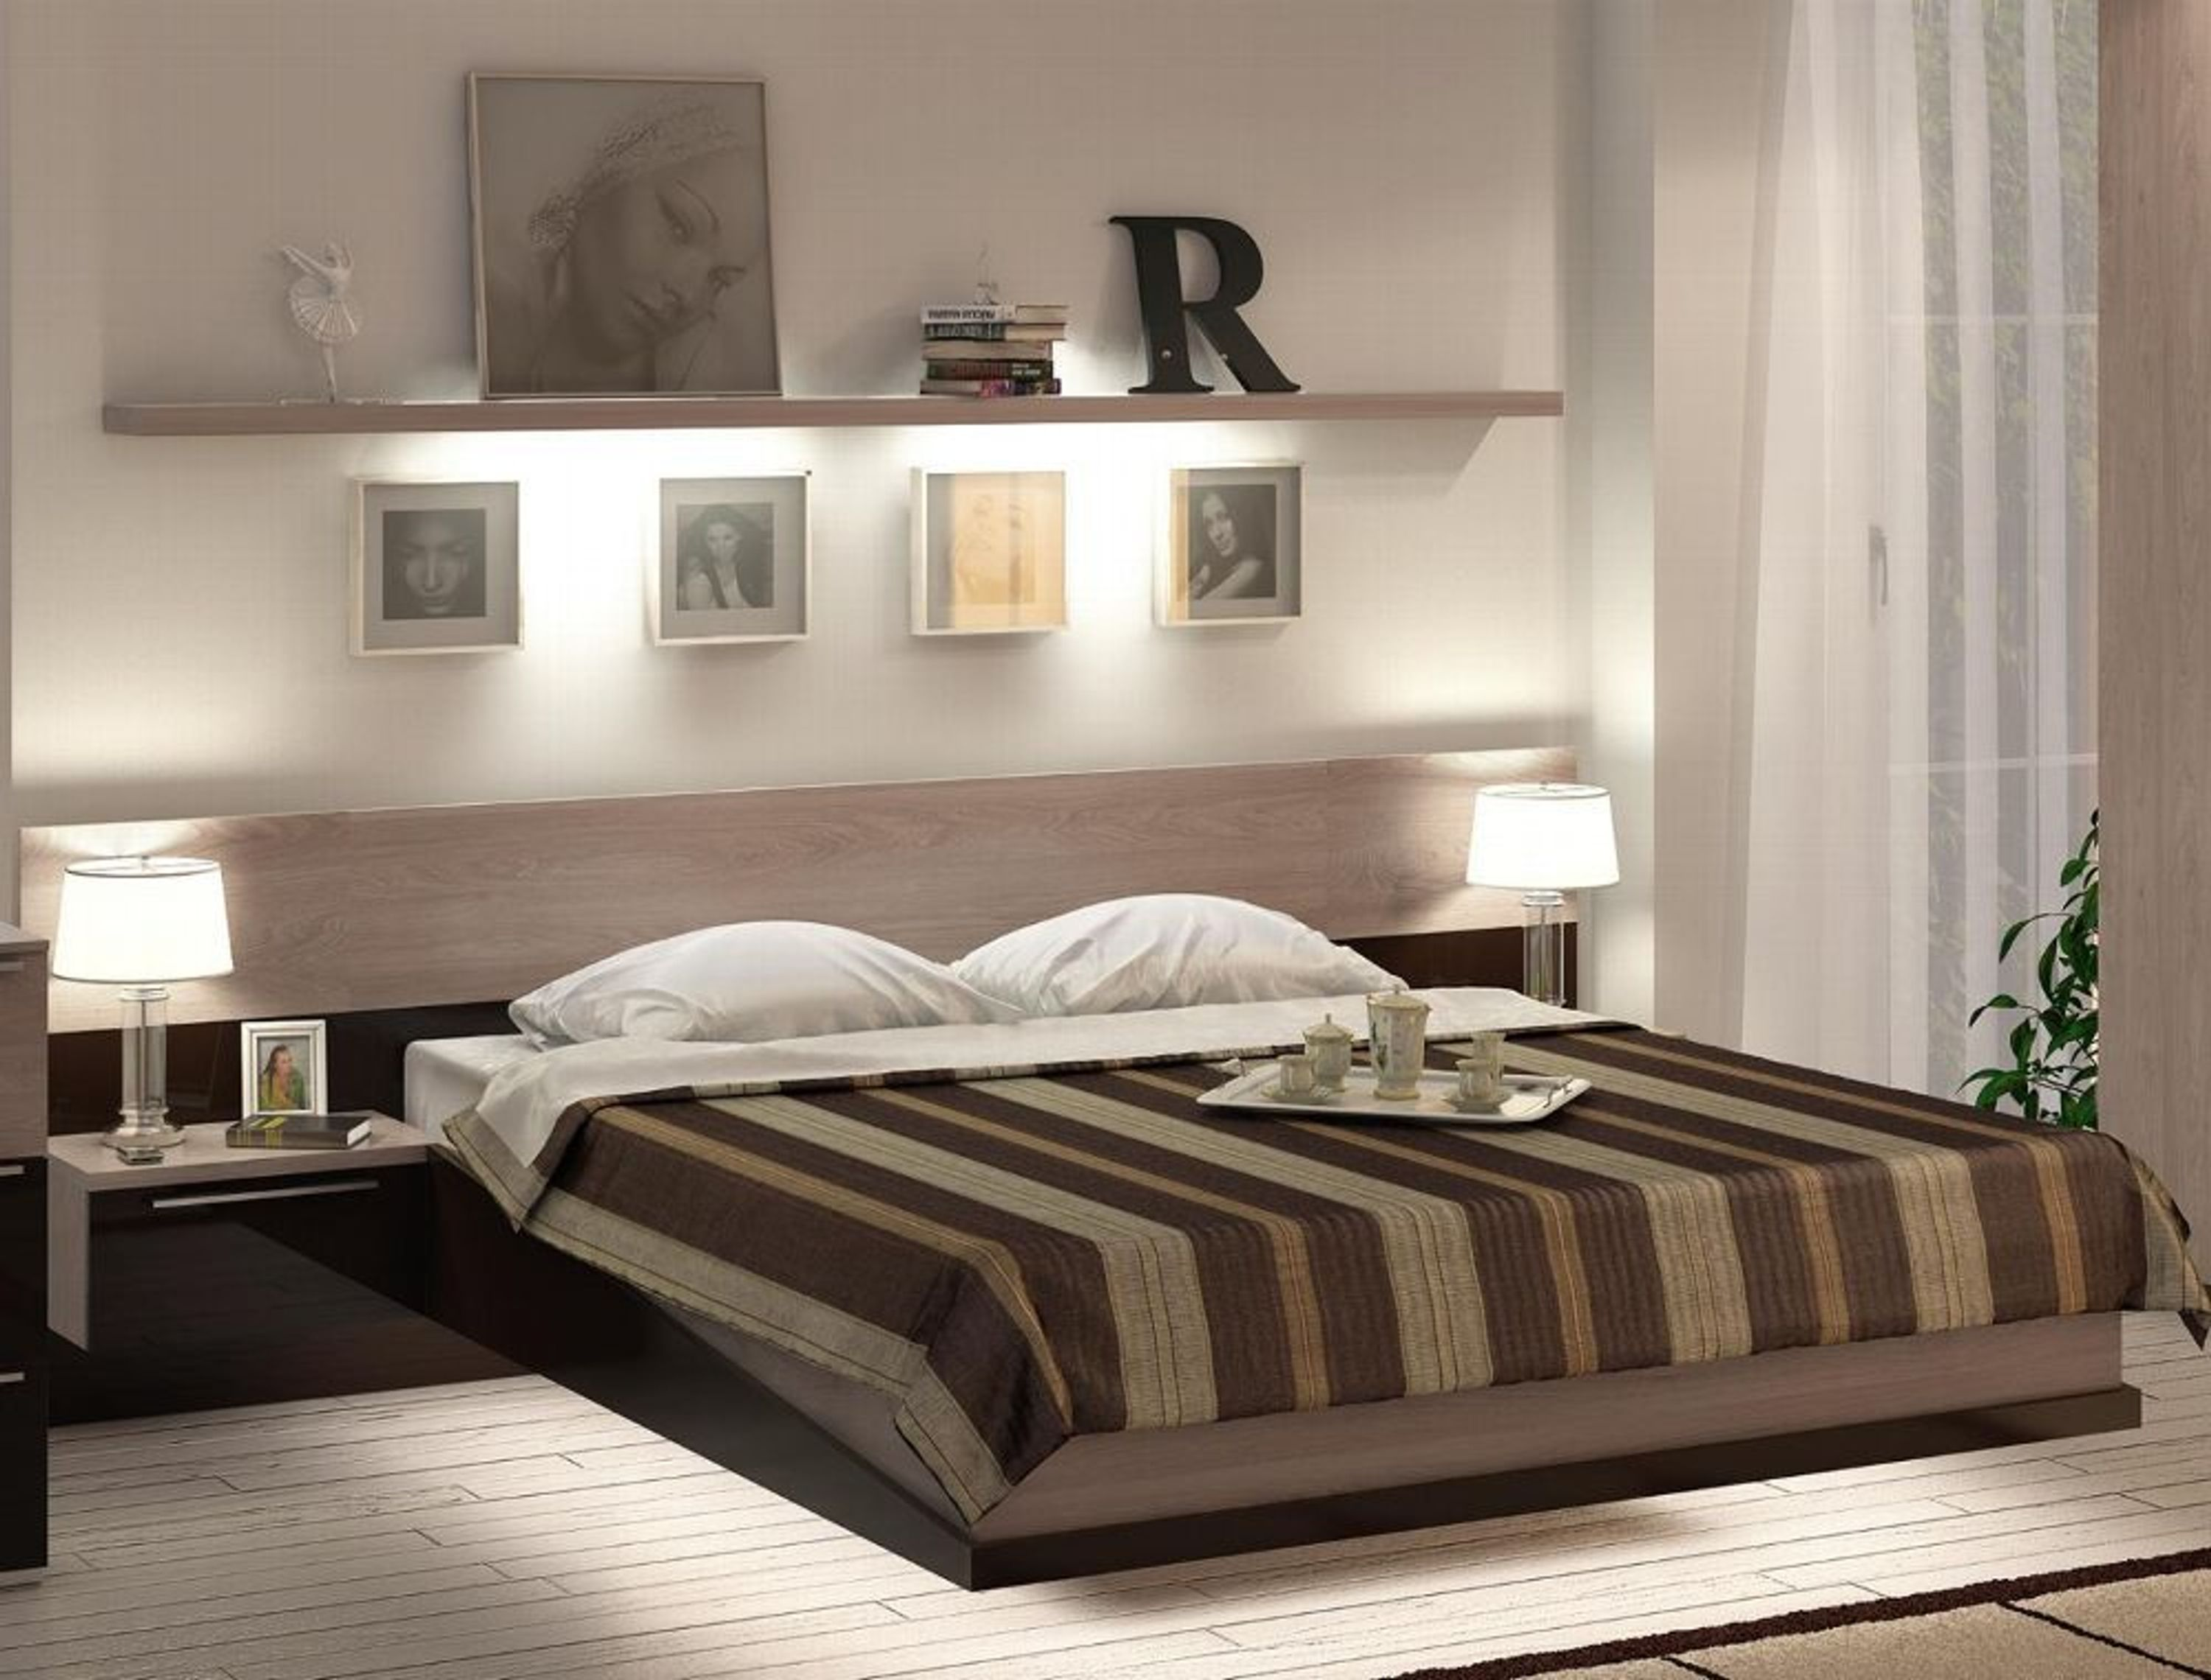 stauraumbett twin 160x200 cm in sonoma bronze glanz kaufen. Black Bedroom Furniture Sets. Home Design Ideas